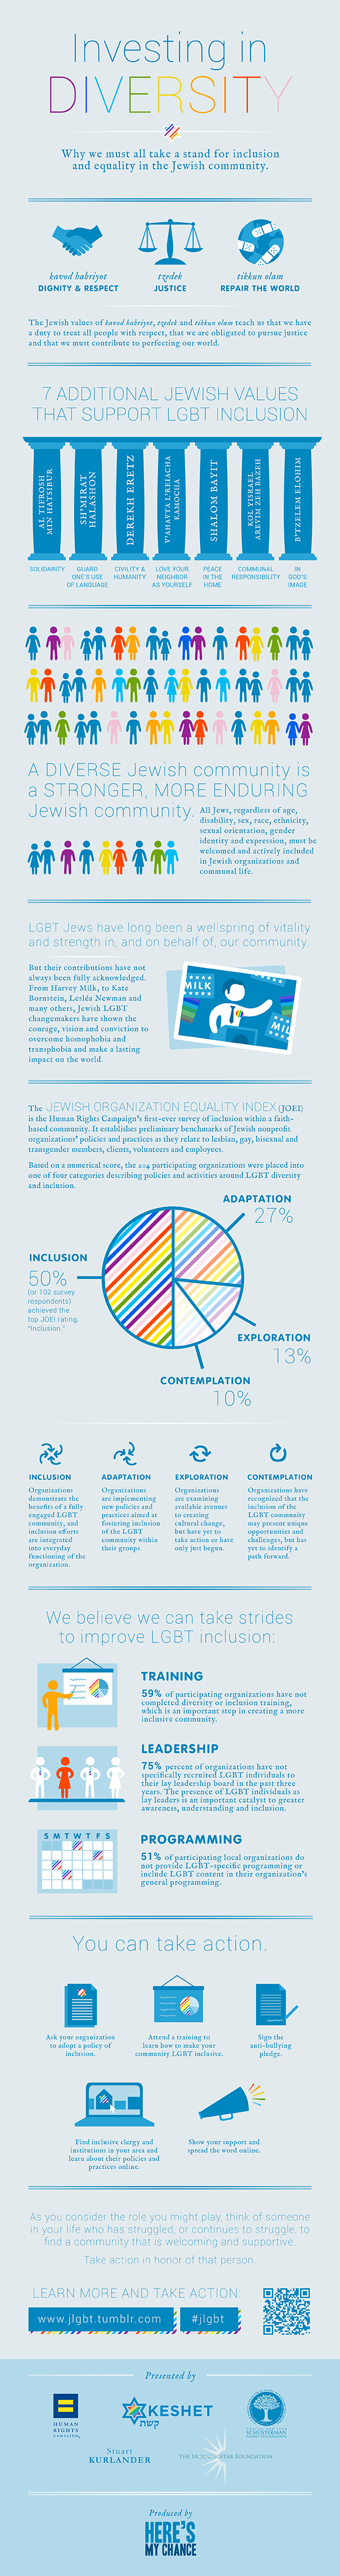 investing-in-diversity_50a297329253e